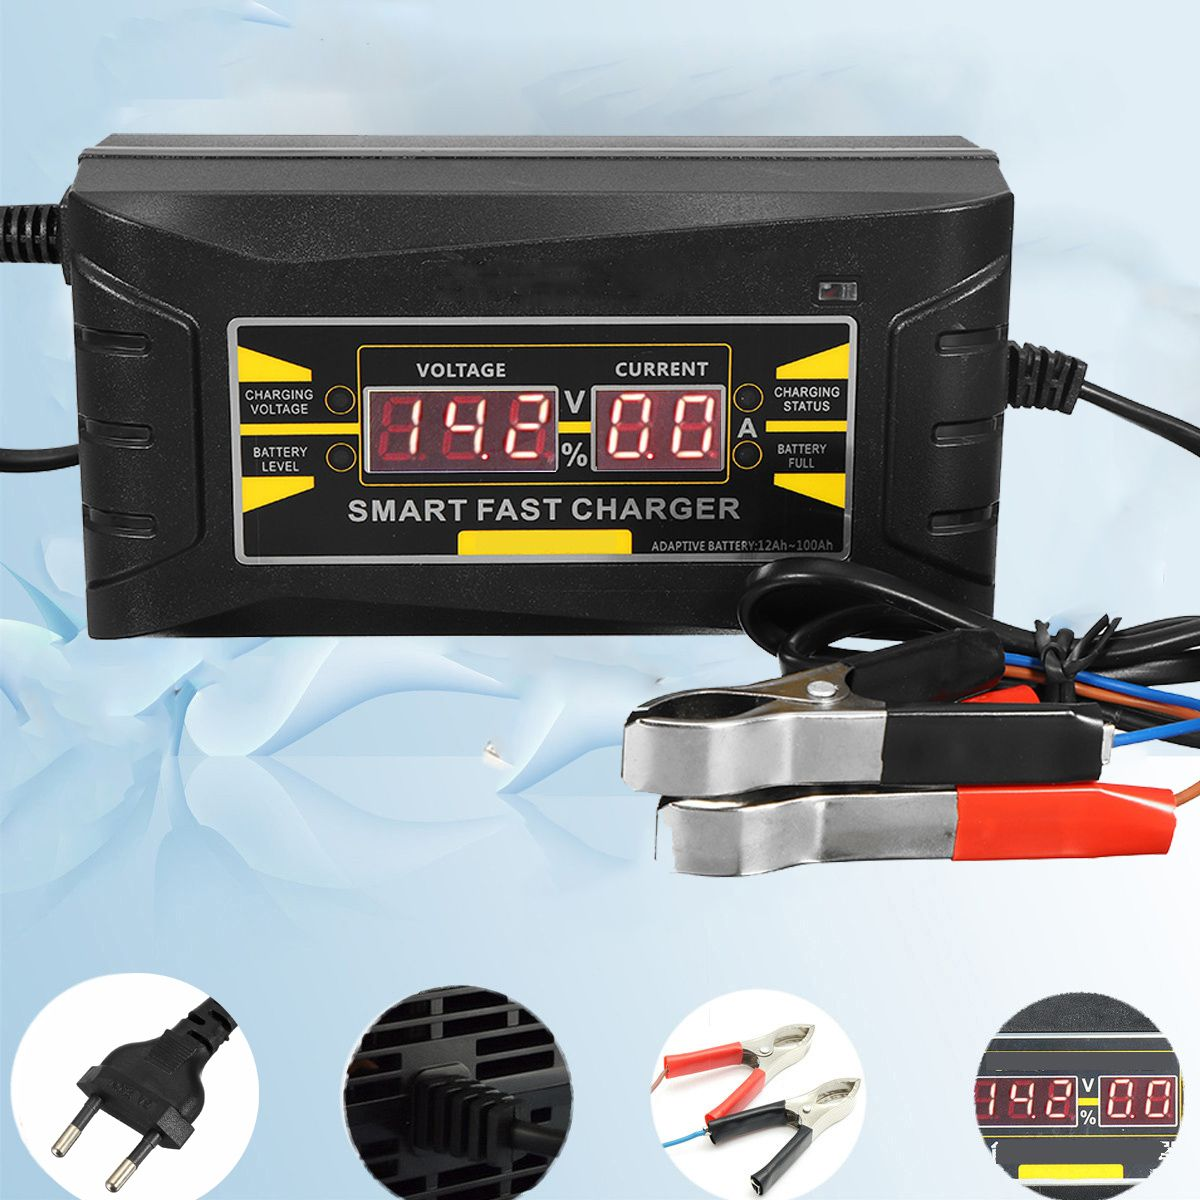 Full Automatic Car Battery Charger 110V/220V To 12V 6A Digital display Smart Fast Power Charging for Car Motorcycle